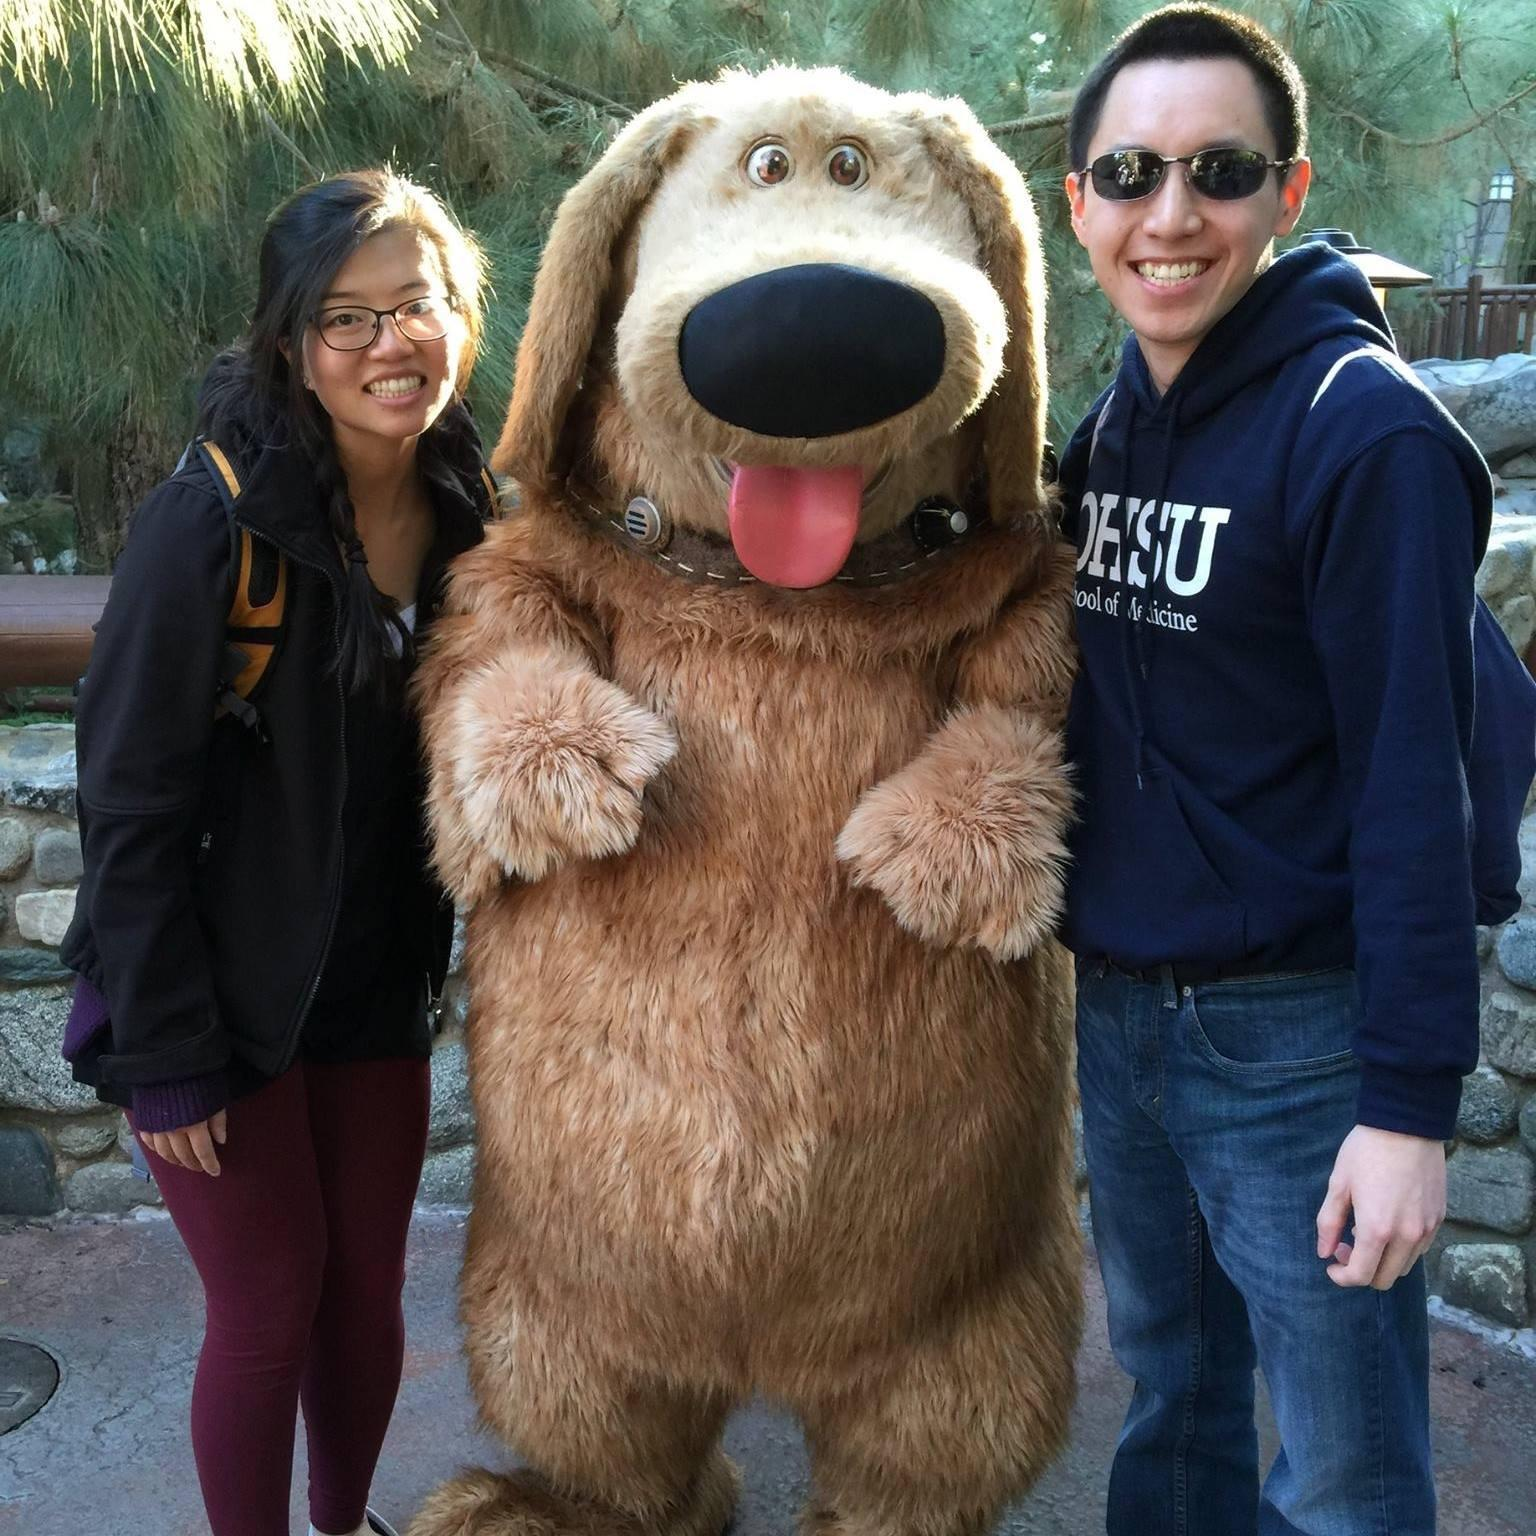 Disneyland — We found Doug! We couldn't find Russell though :(